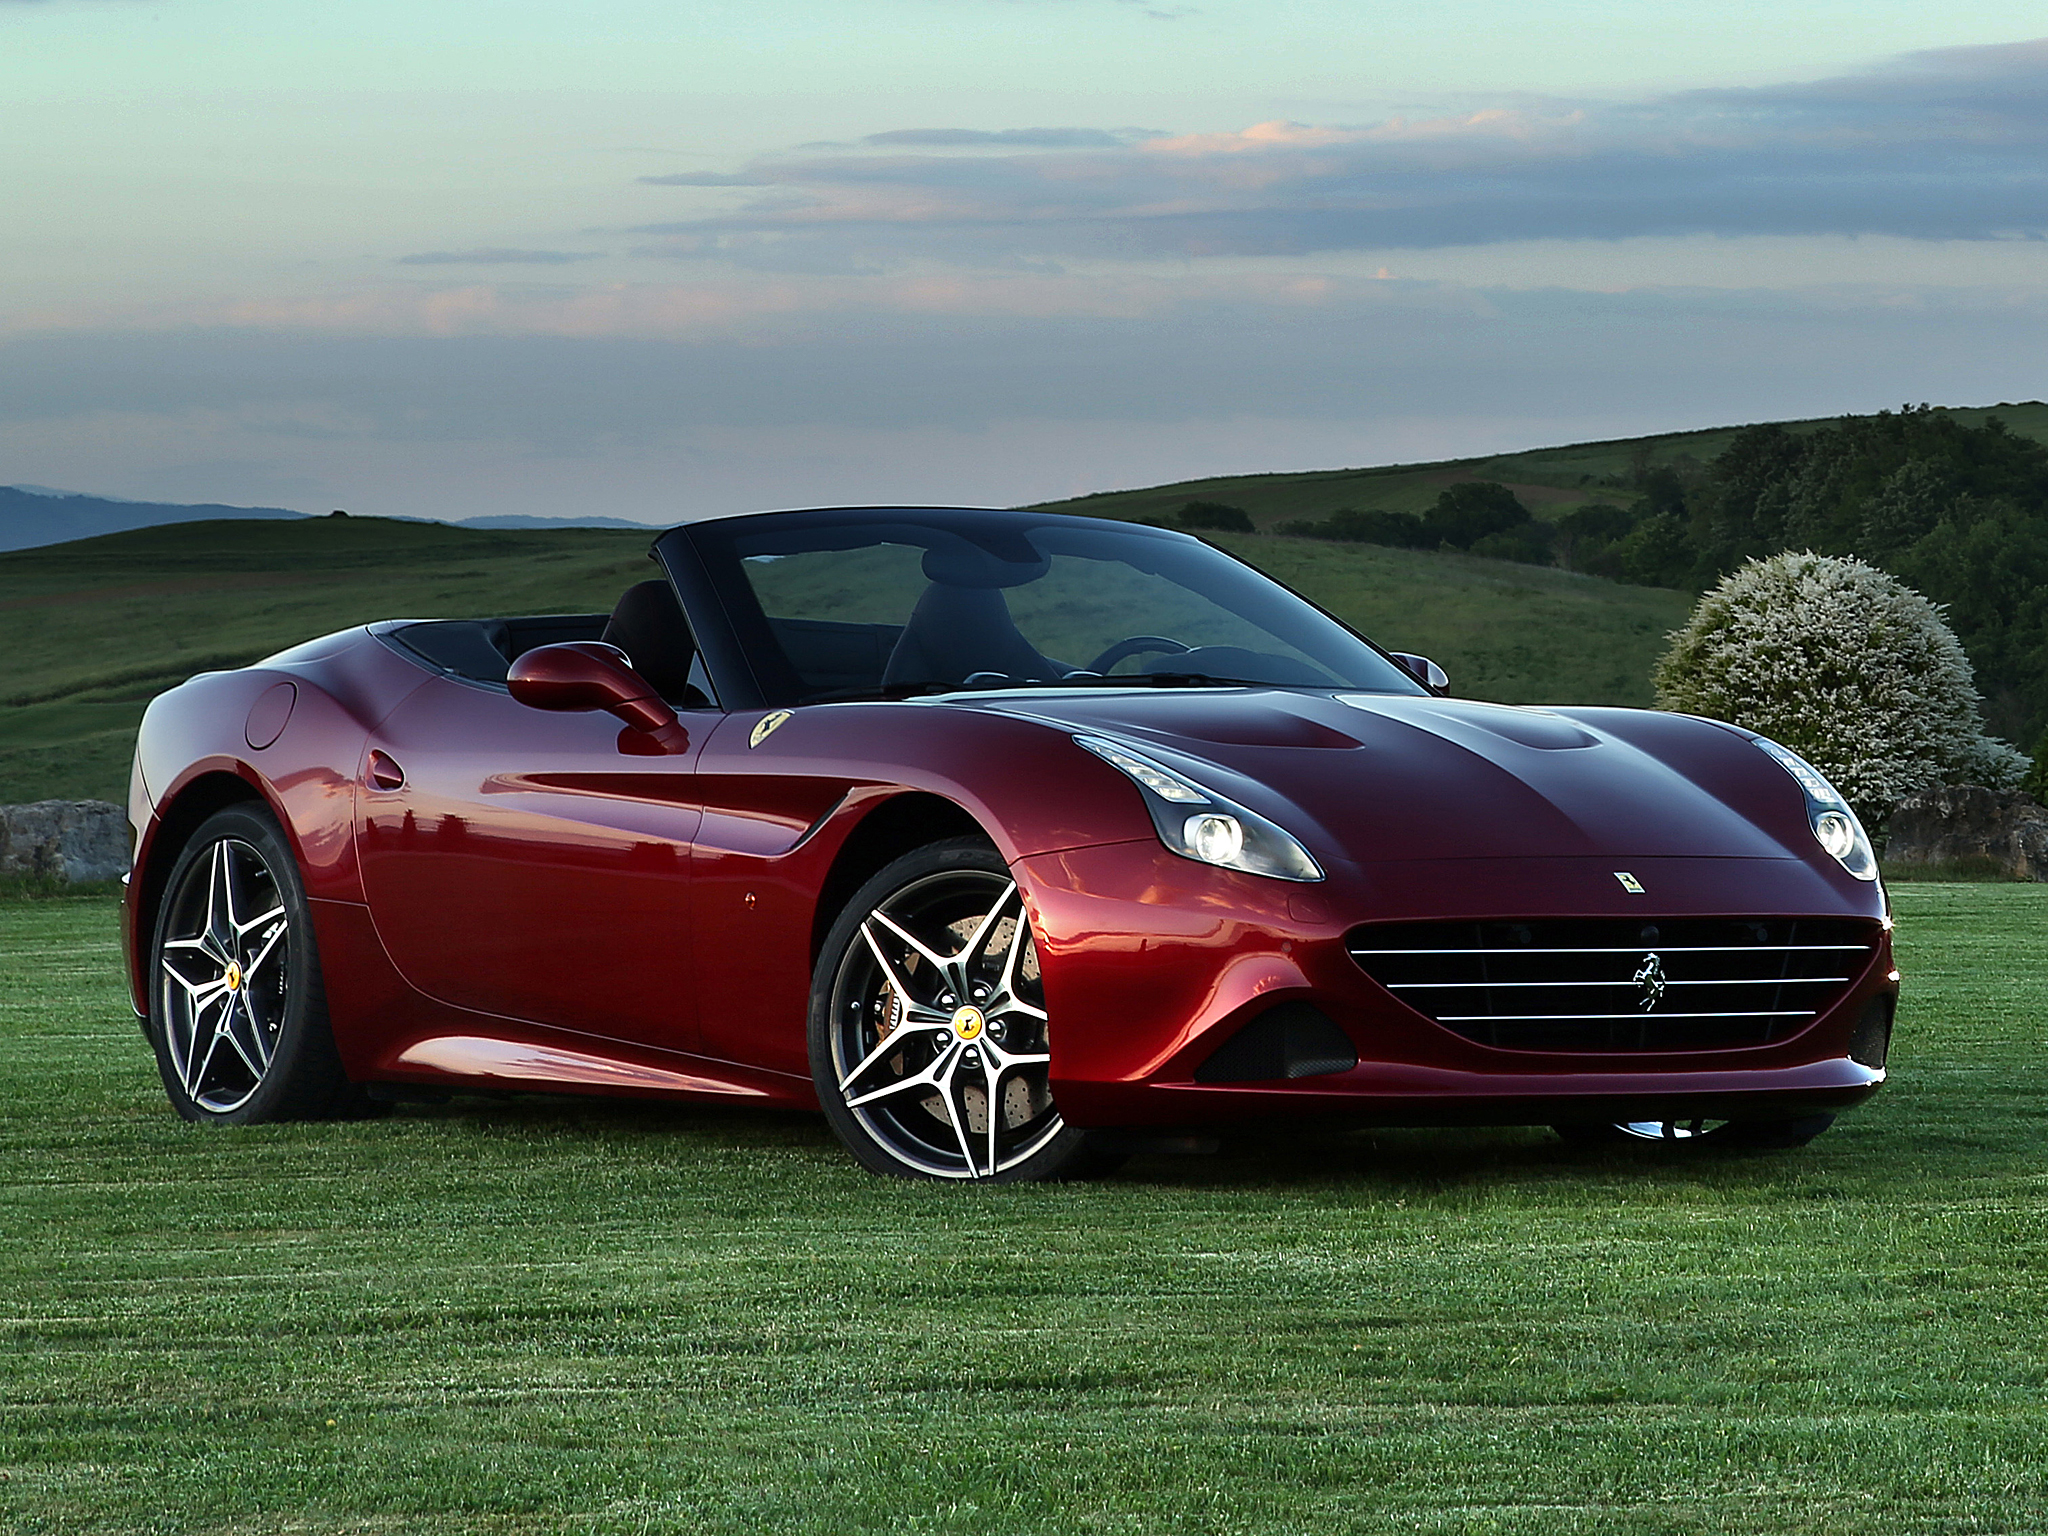 ferrari california t specs 2014 2015 2016 2017 autoevolution. Black Bedroom Furniture Sets. Home Design Ideas